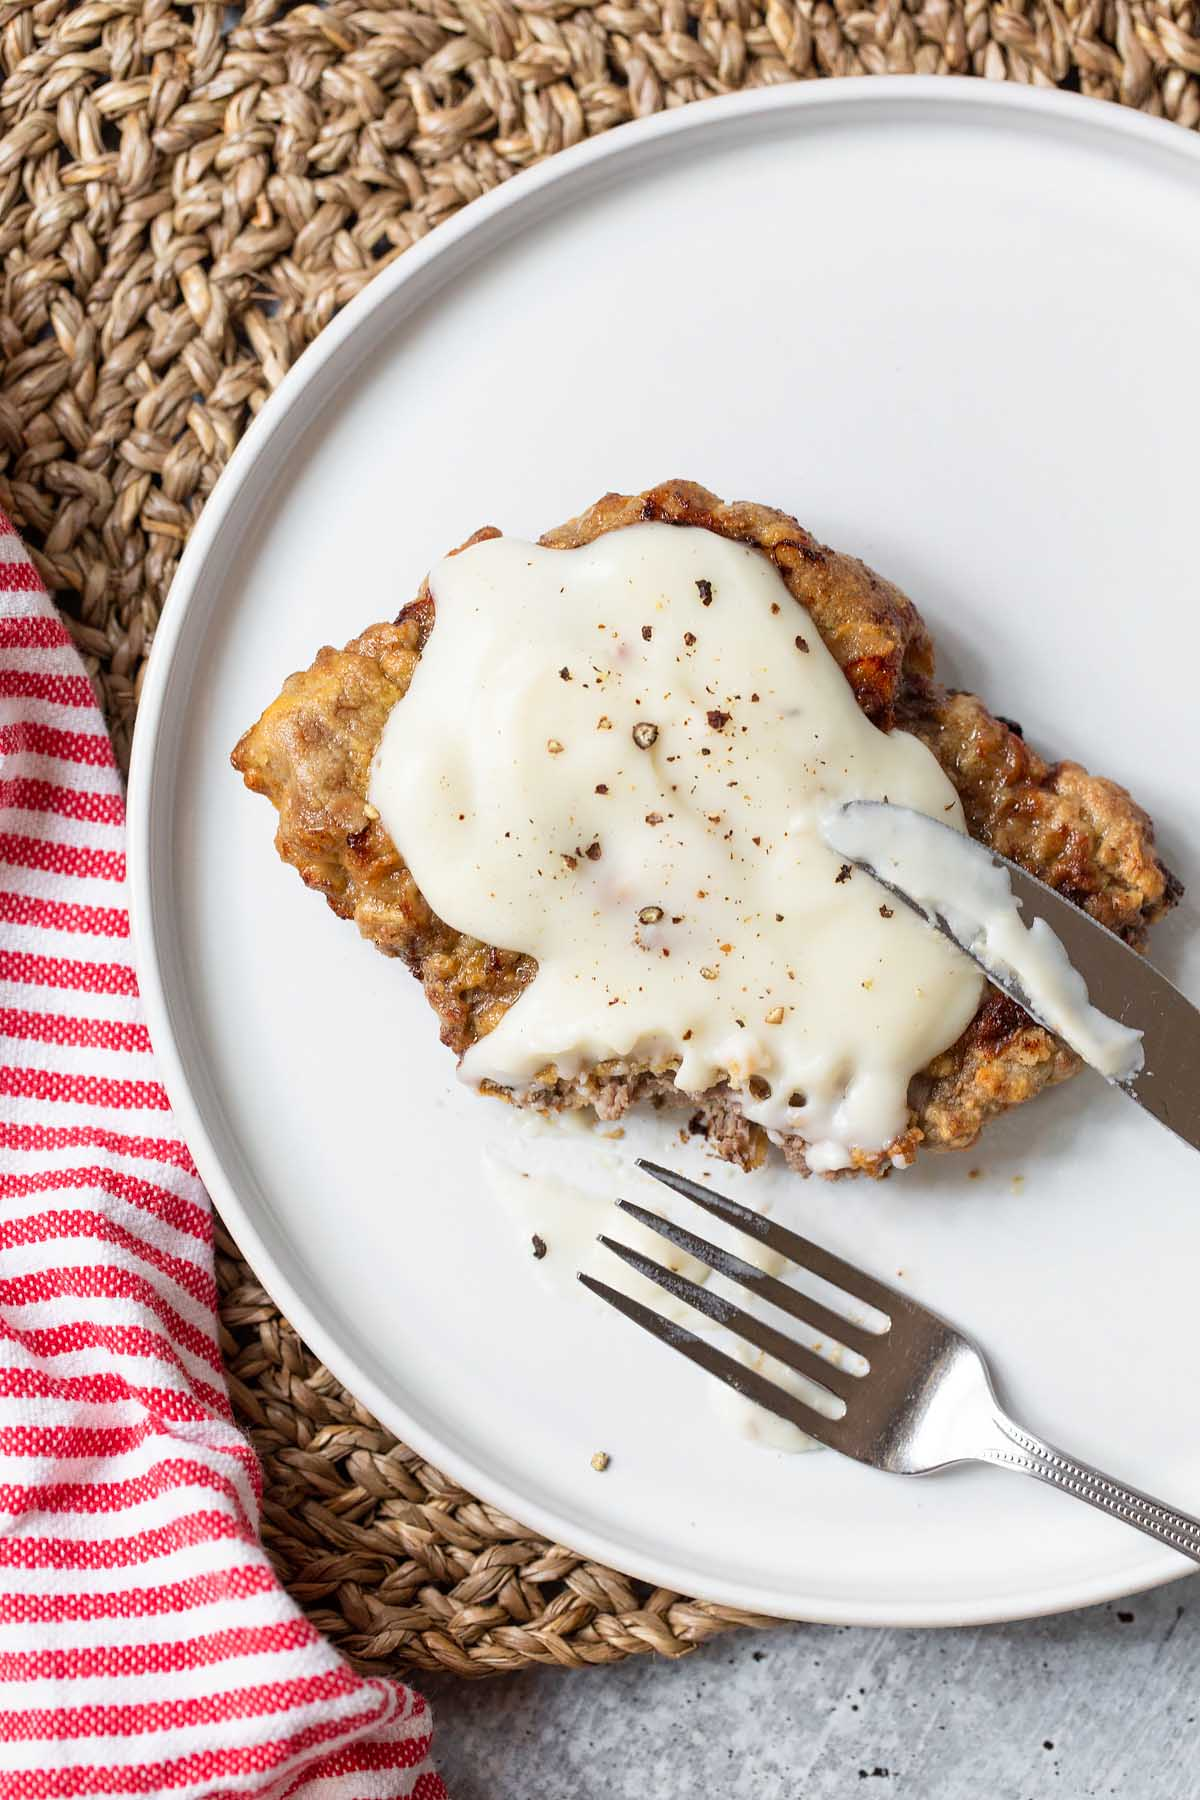 chicken fried steak with a piece cut out